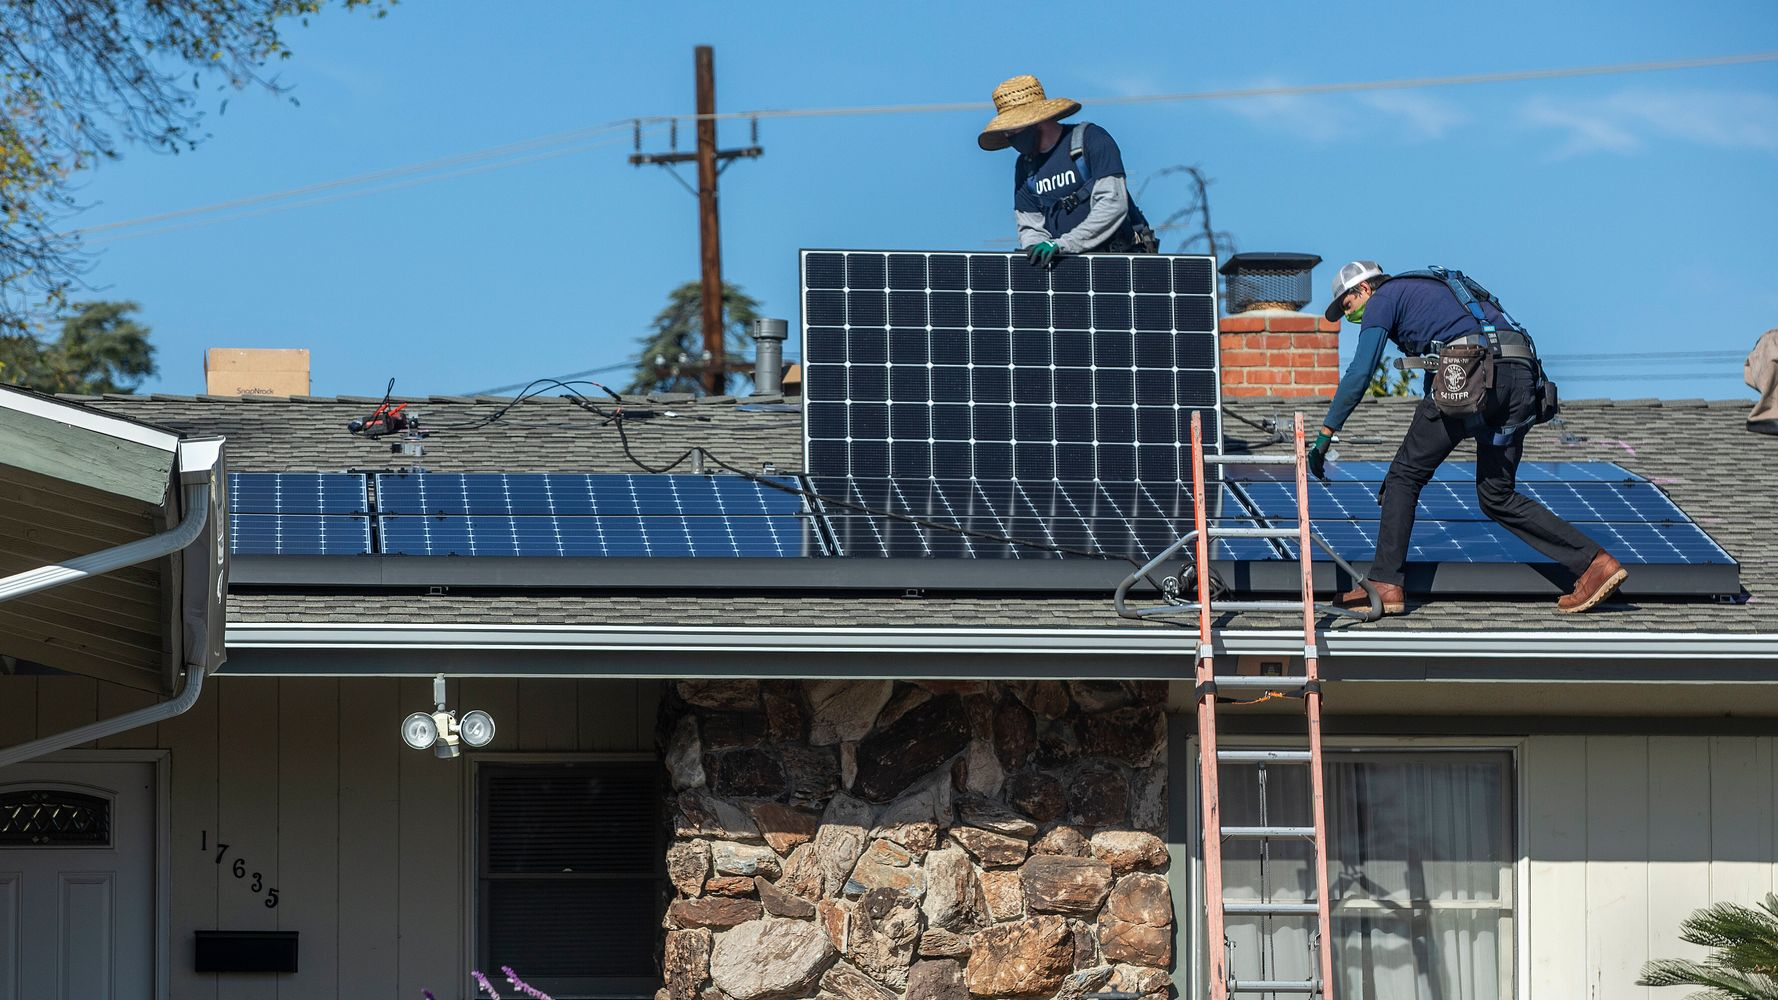 The Solar Industry Has More Union Jobs Than Previously Thought